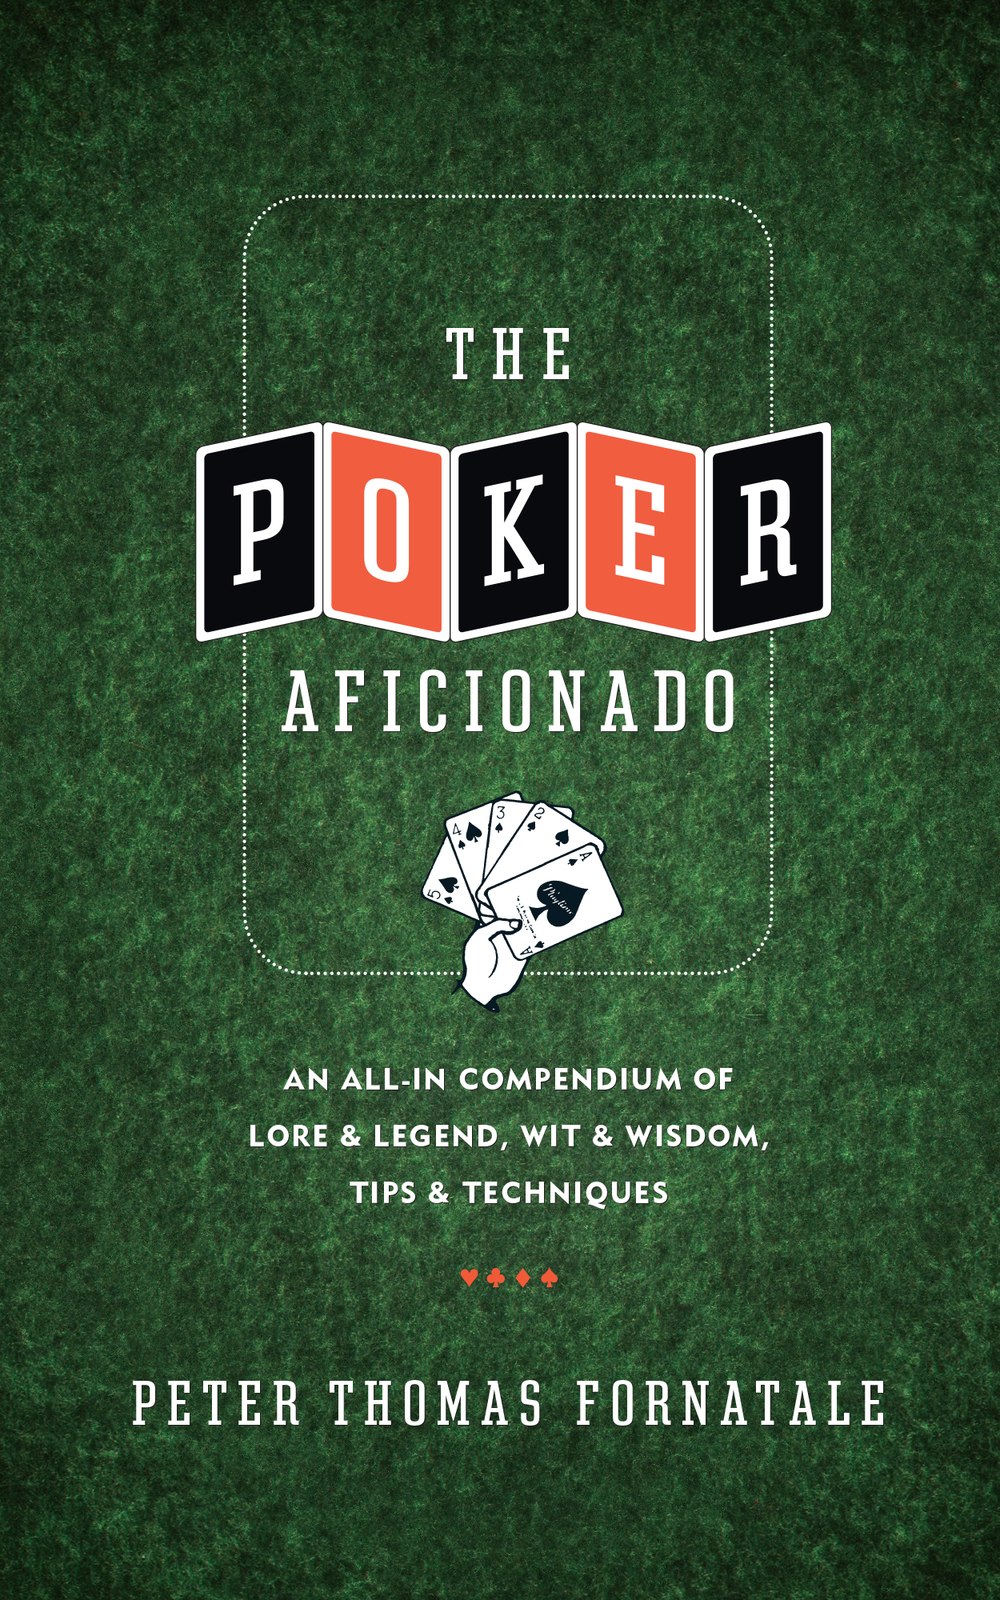 The Poker Aficionado cover